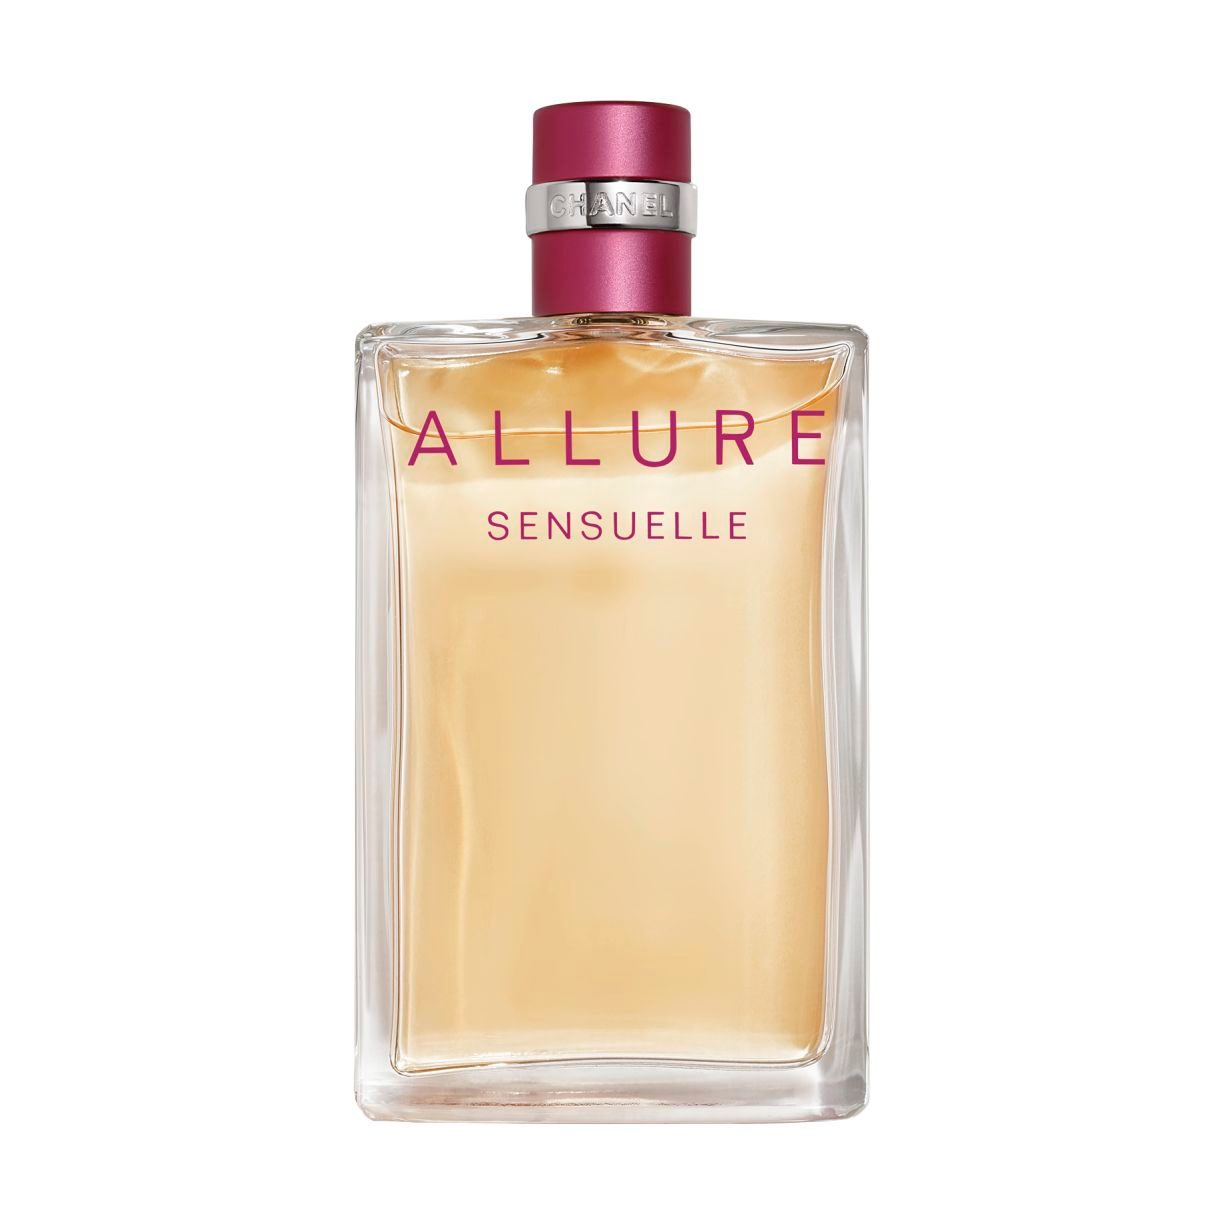 ALLURE SENSUELLE EAU DE TOILETTE SPRAY 100ml